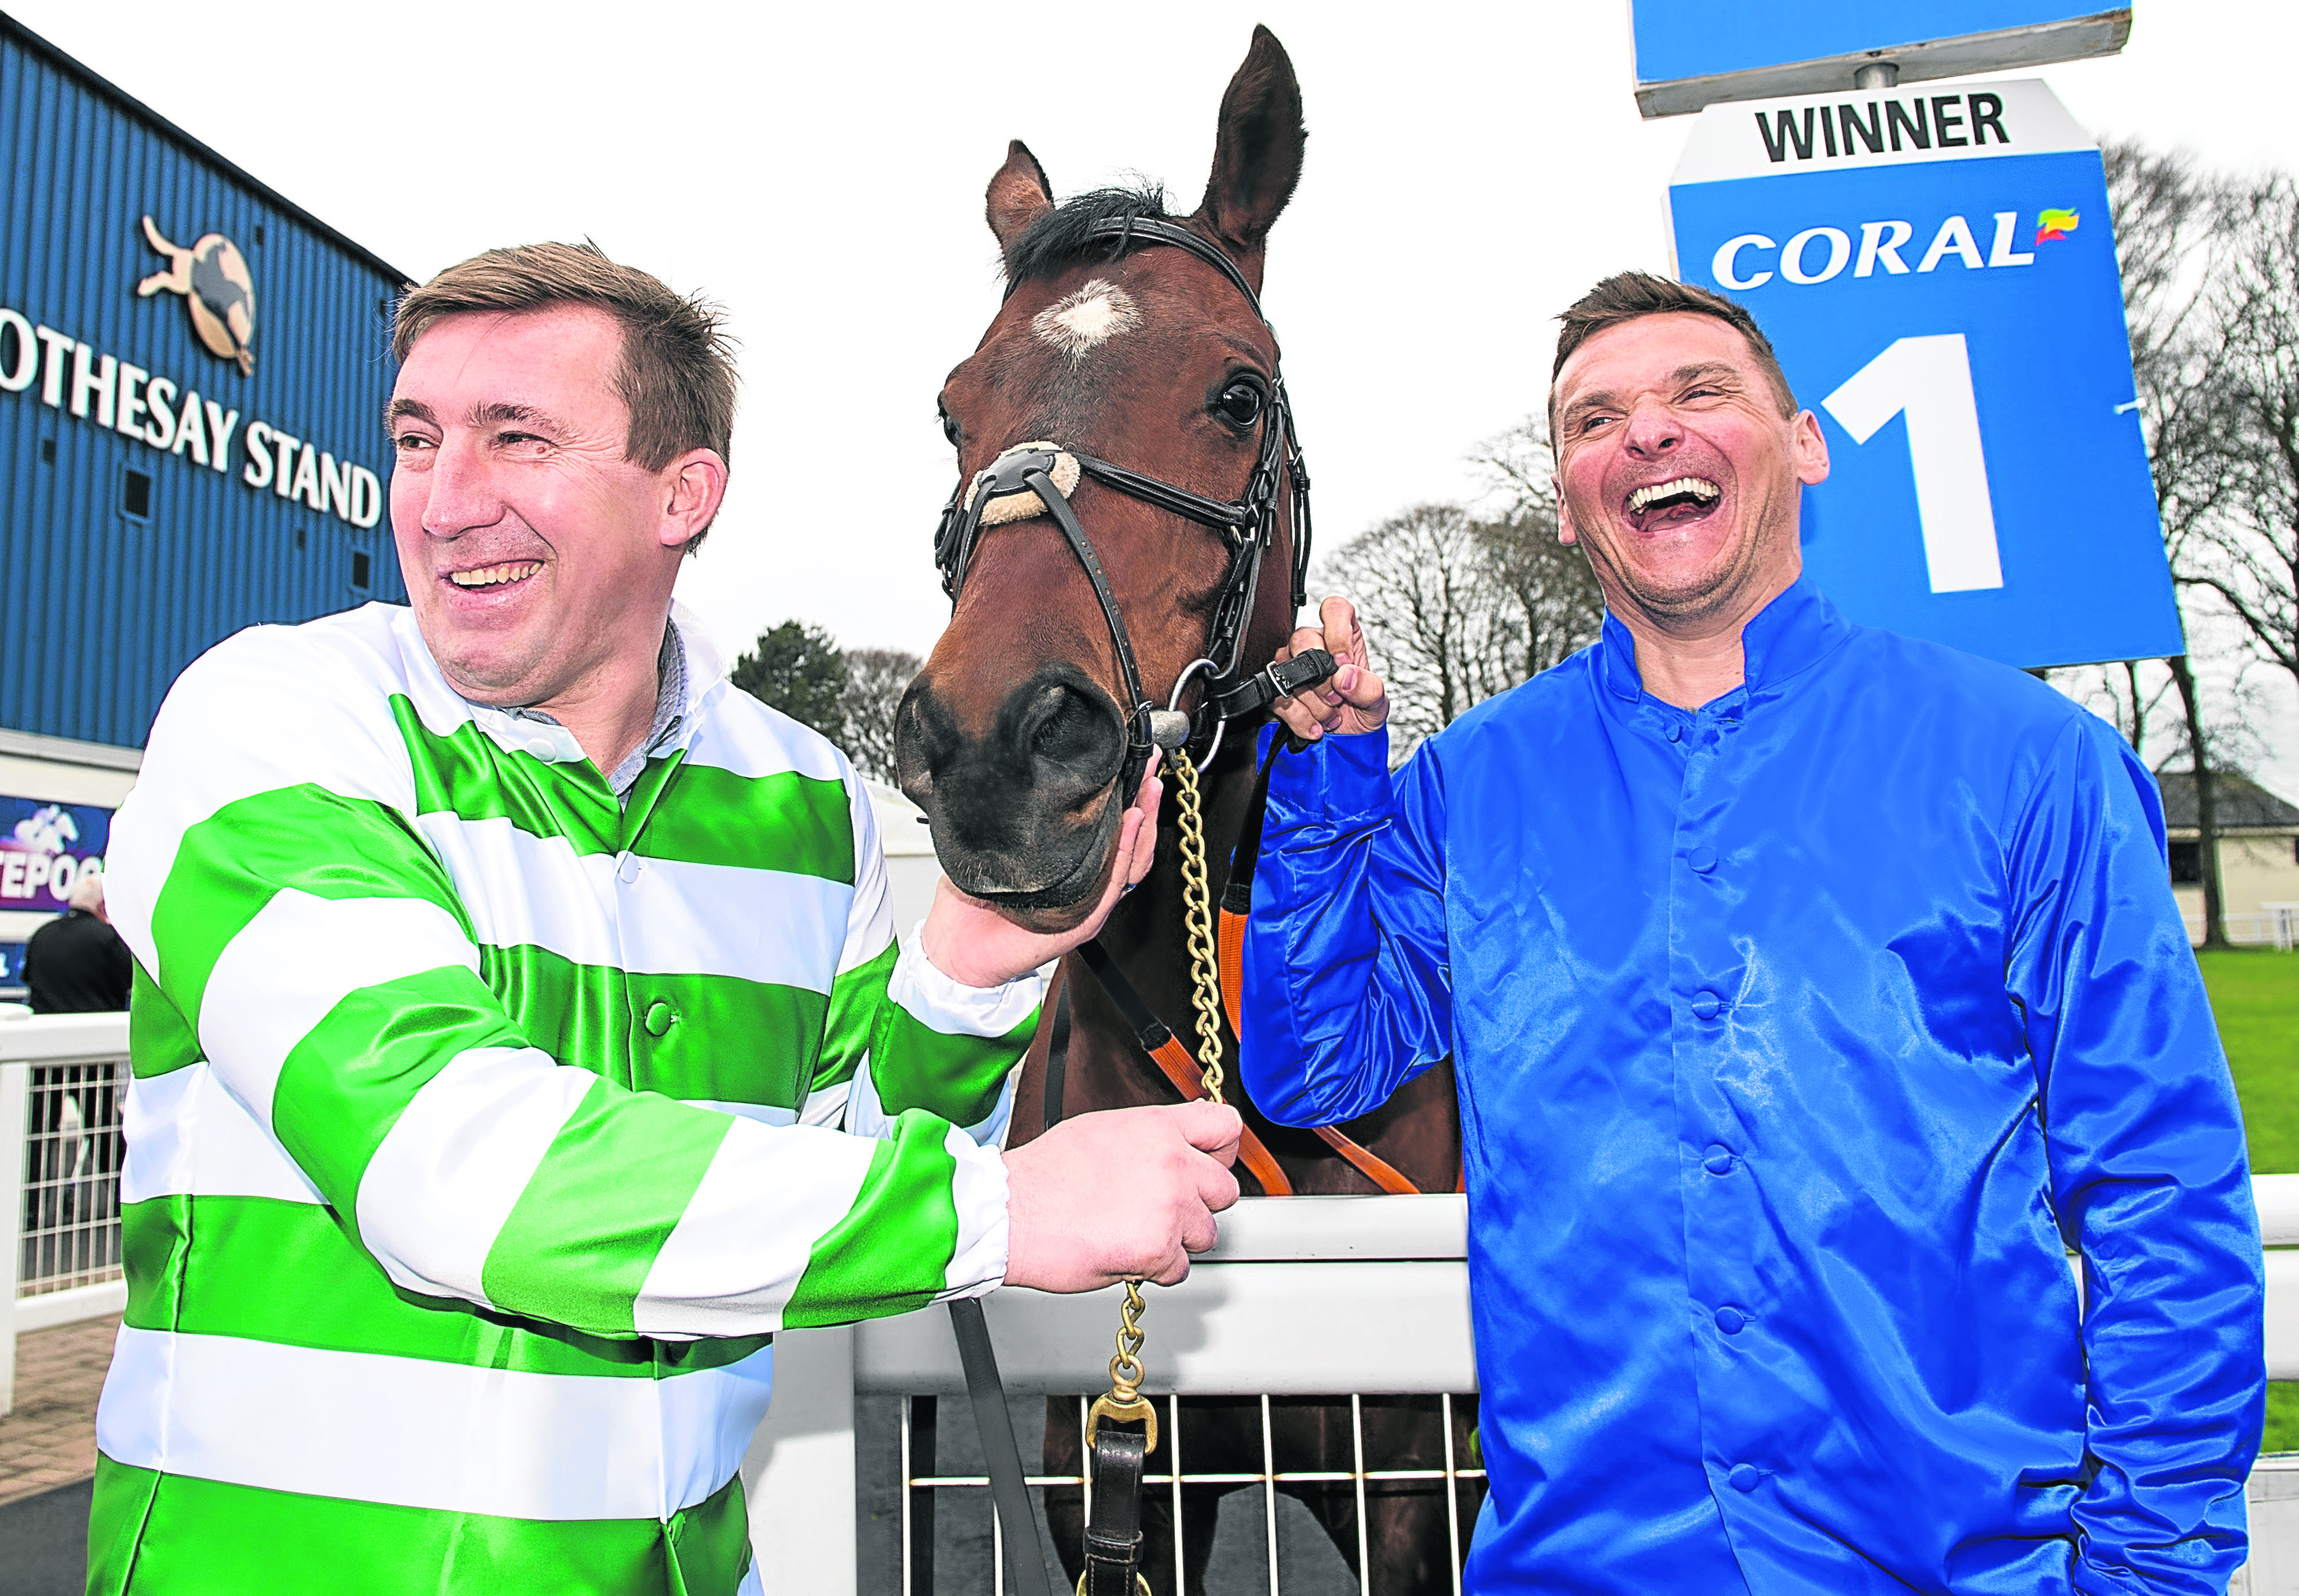 Former Celtic player Alan Stubbs (left) is pictured with former Rangers player Lee McCulloch as they preview this the Coral Scottish Grand National at Ayr Racecourse.